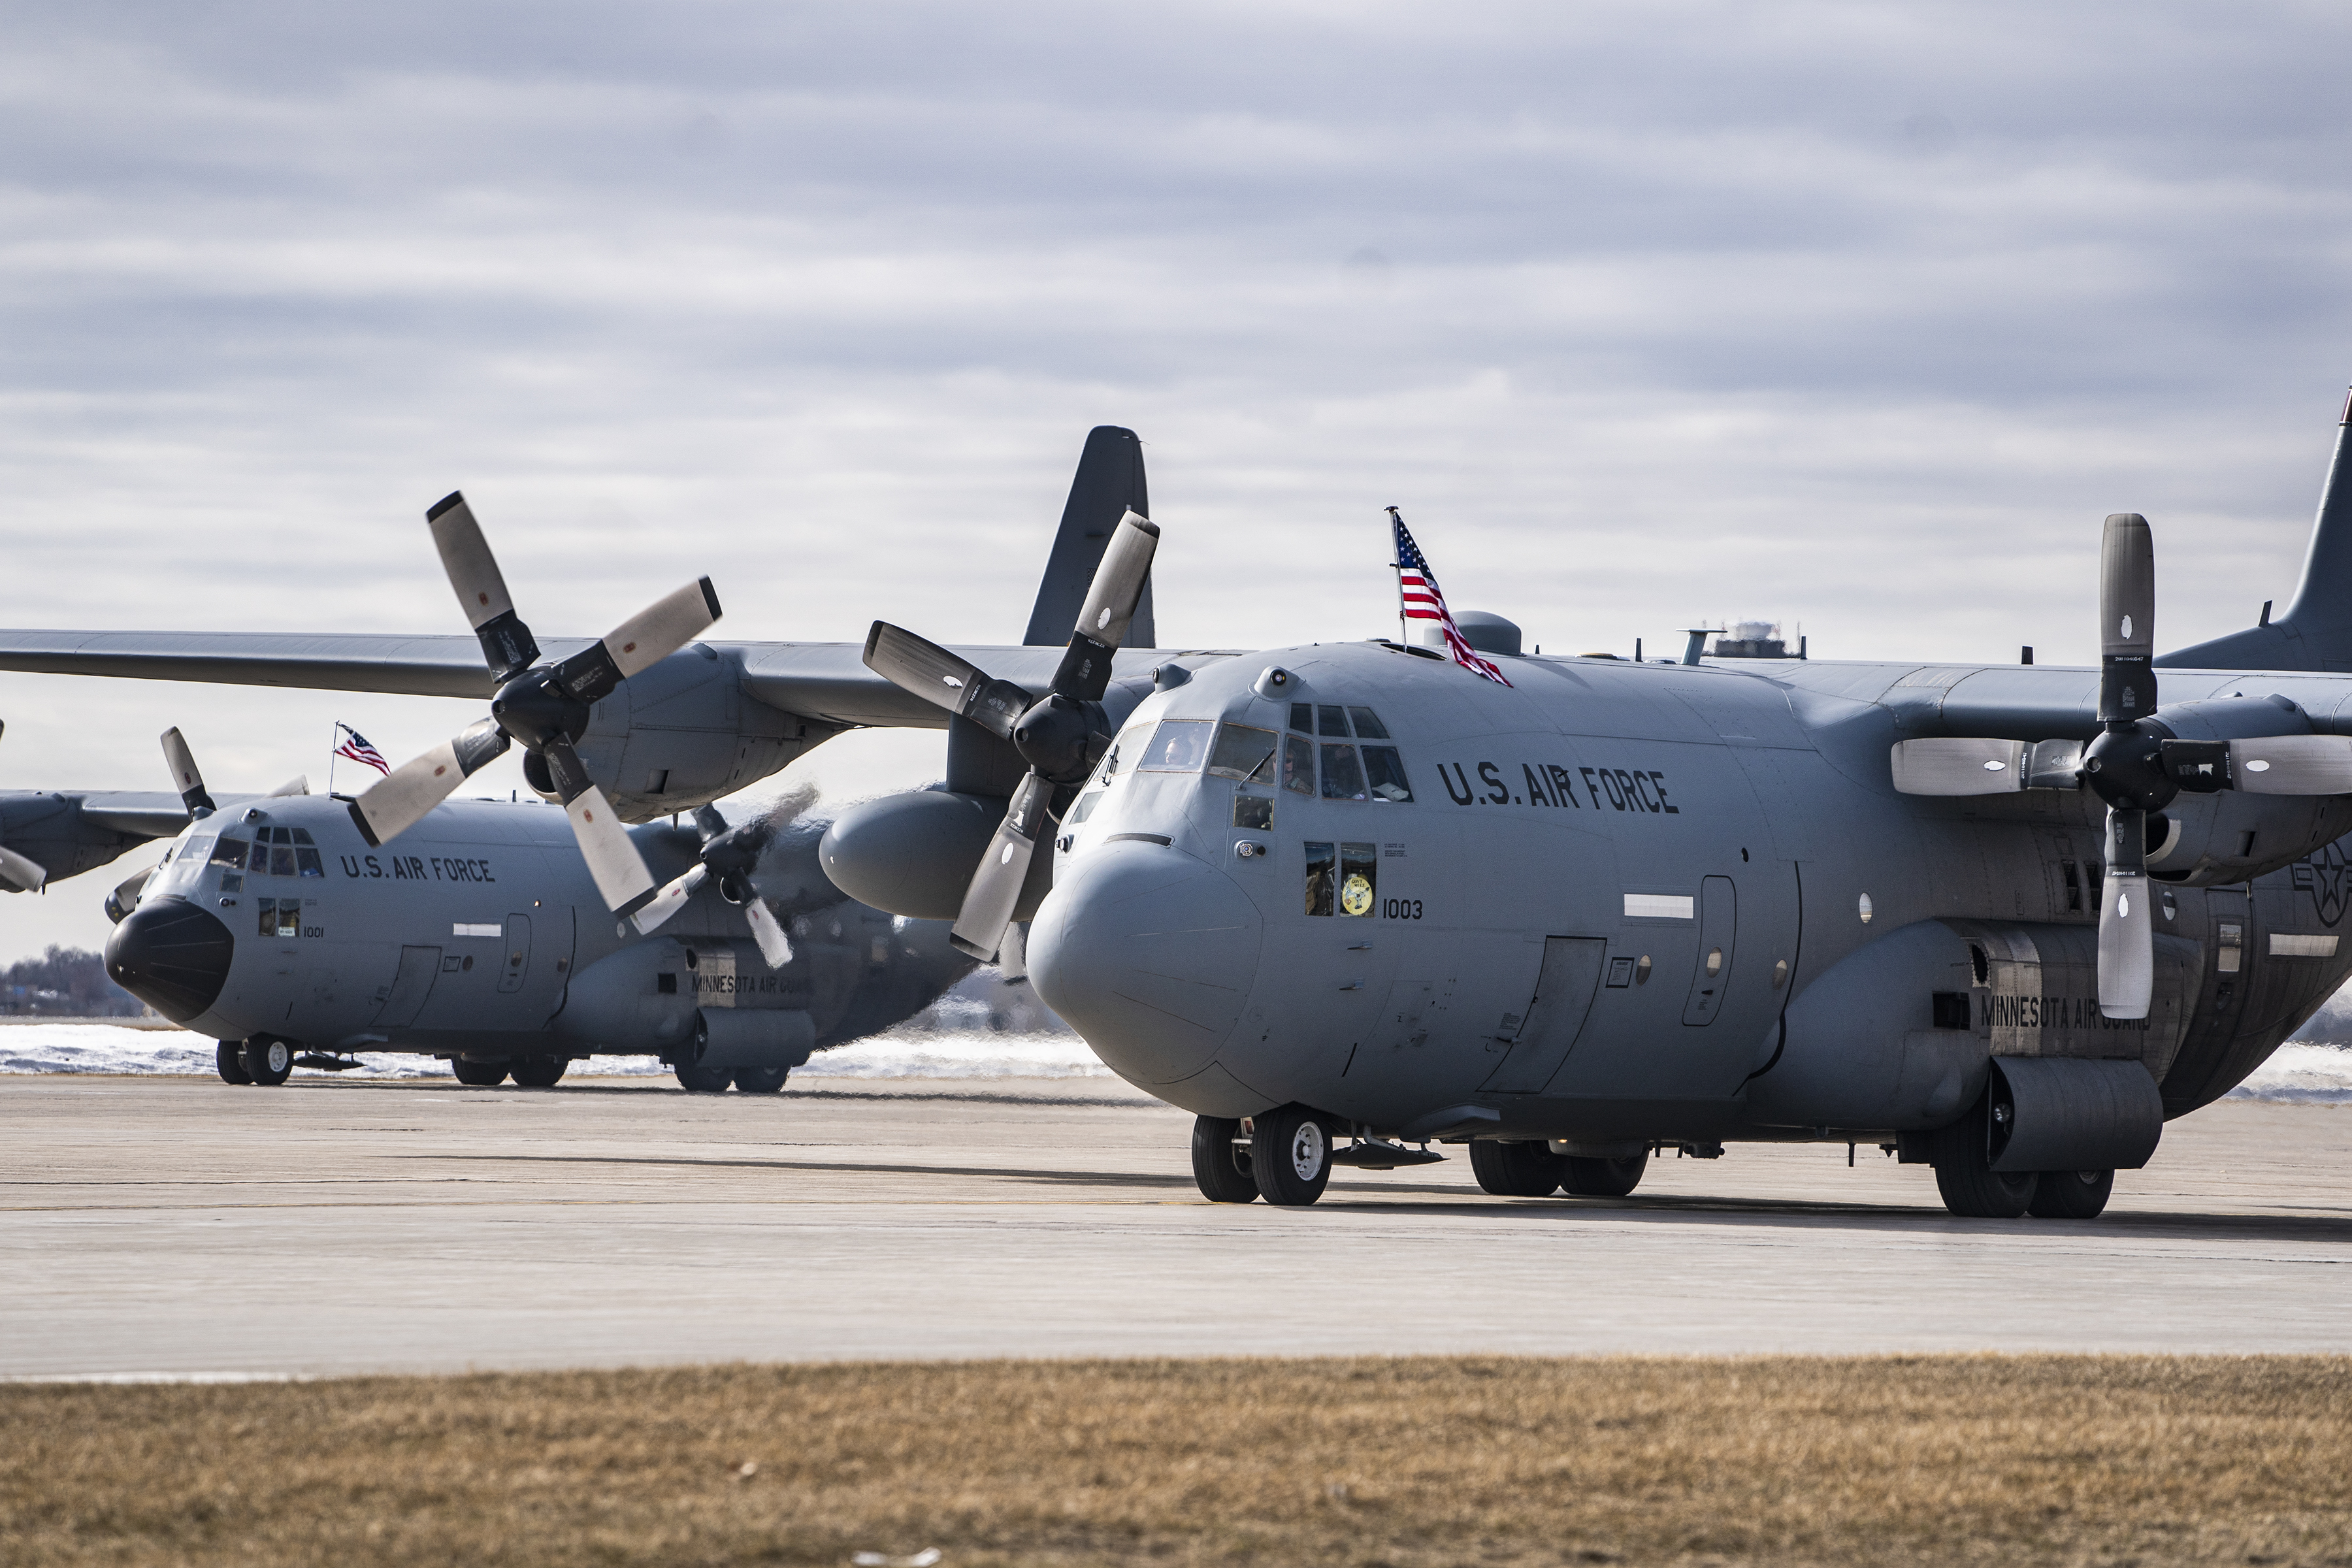 Several C-130 aircraft landed in 2020 after carrying service members back from a deployment in the Middle East.